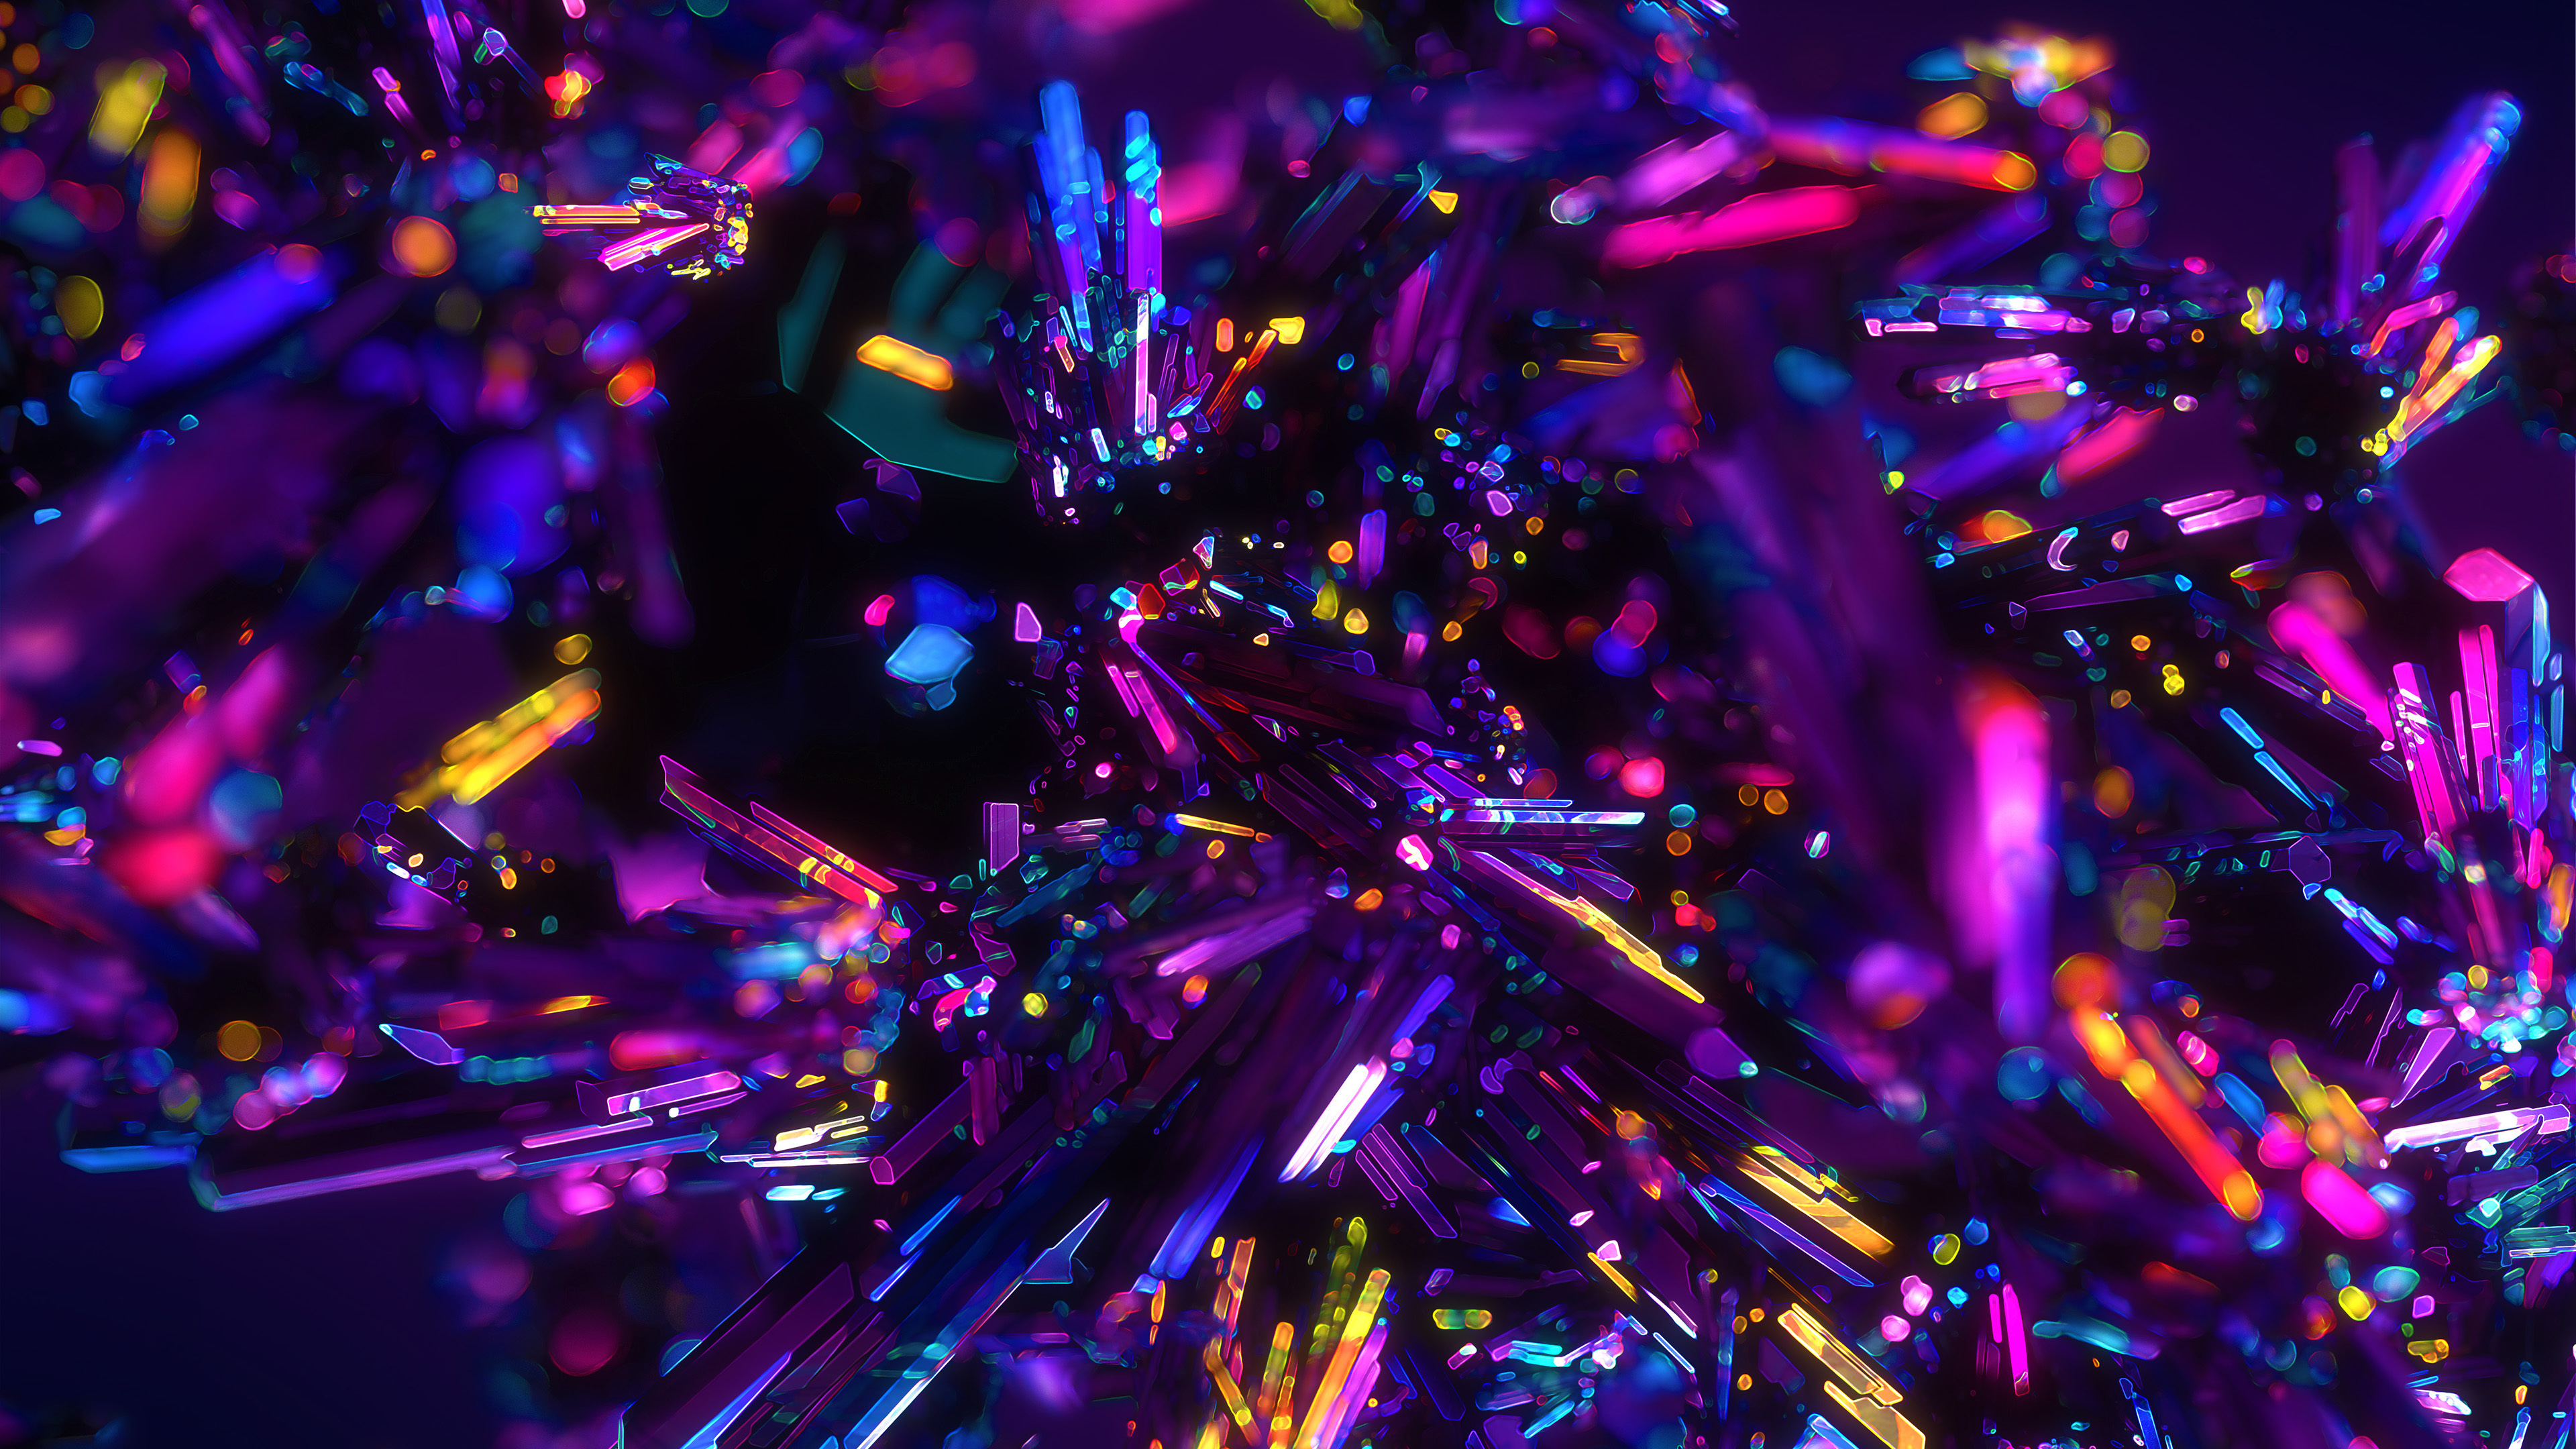 Colorful Crystals Abstract 4K Wallpapers | HD Wallpapers